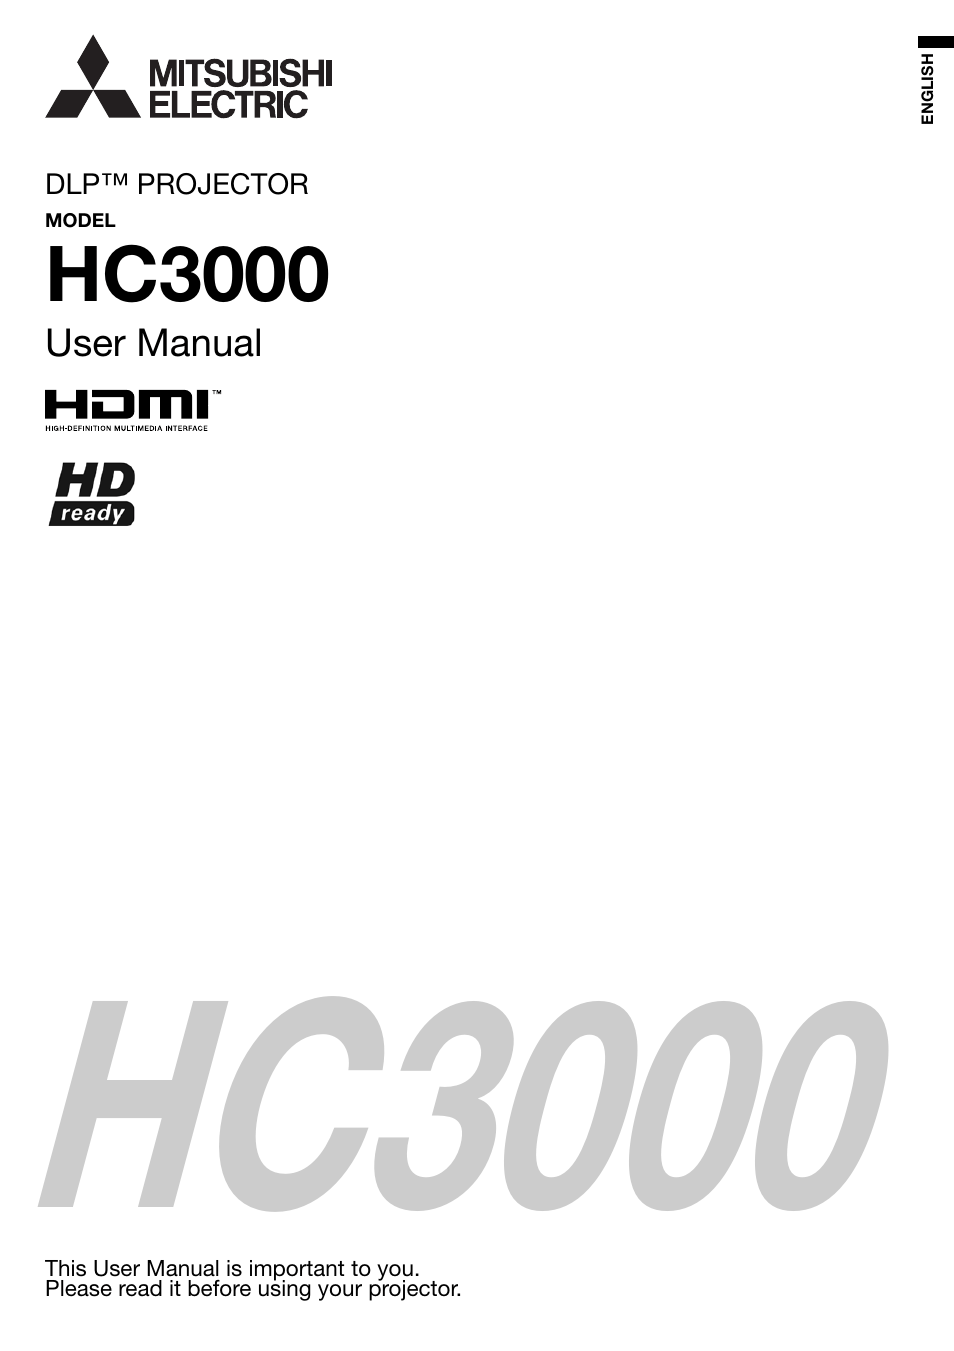 medium resolution of mitsubishi hc3000 projector schematic